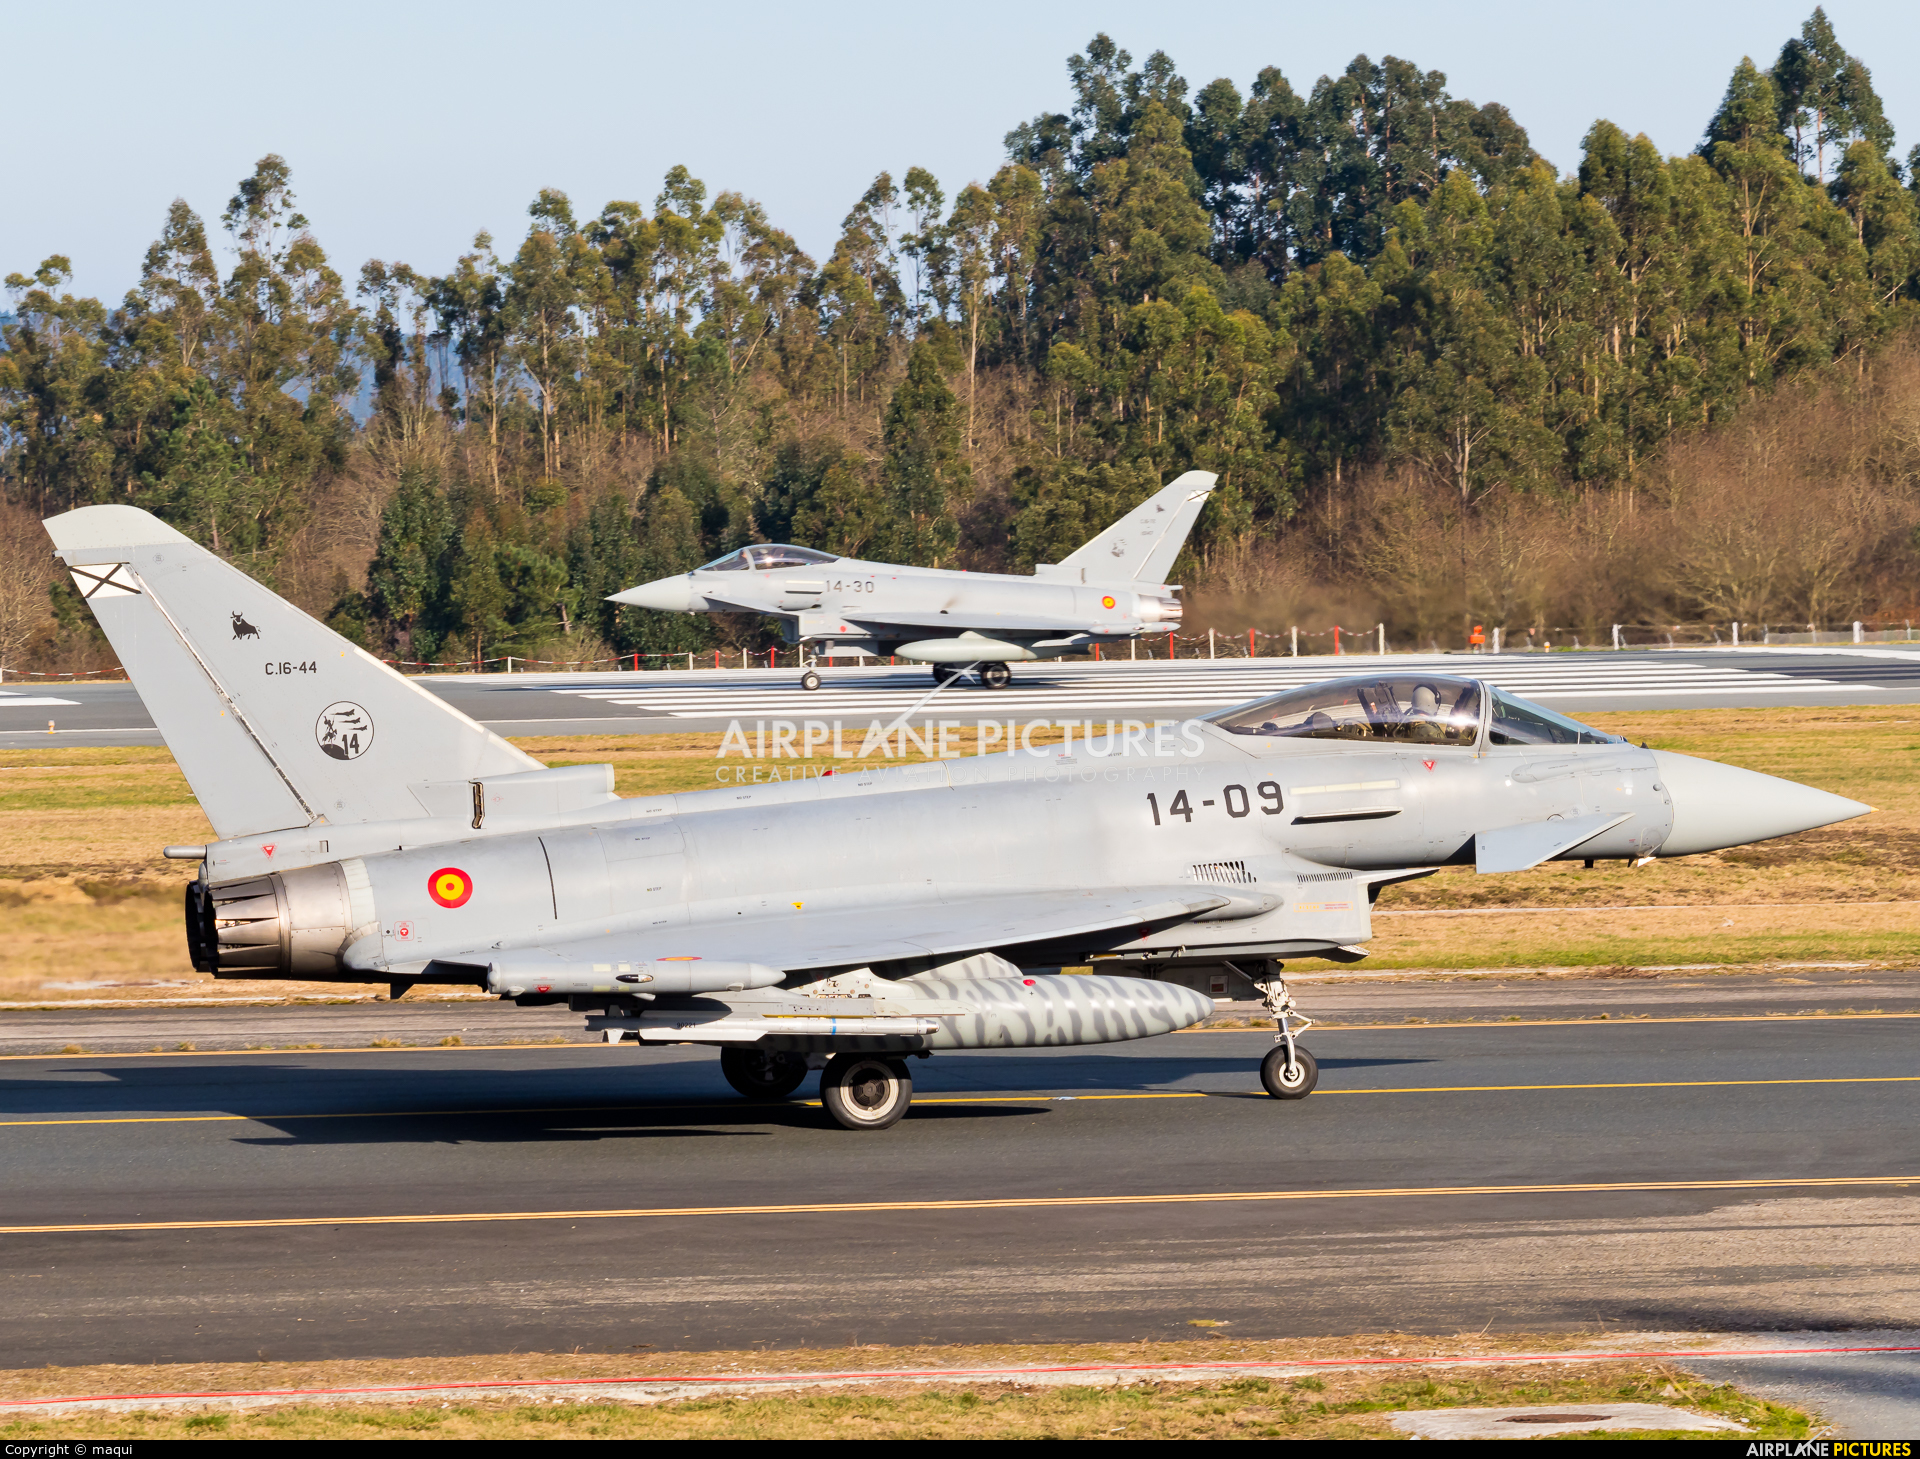 Spain - Air Force C.16-44 aircraft at Santiago de Compostela